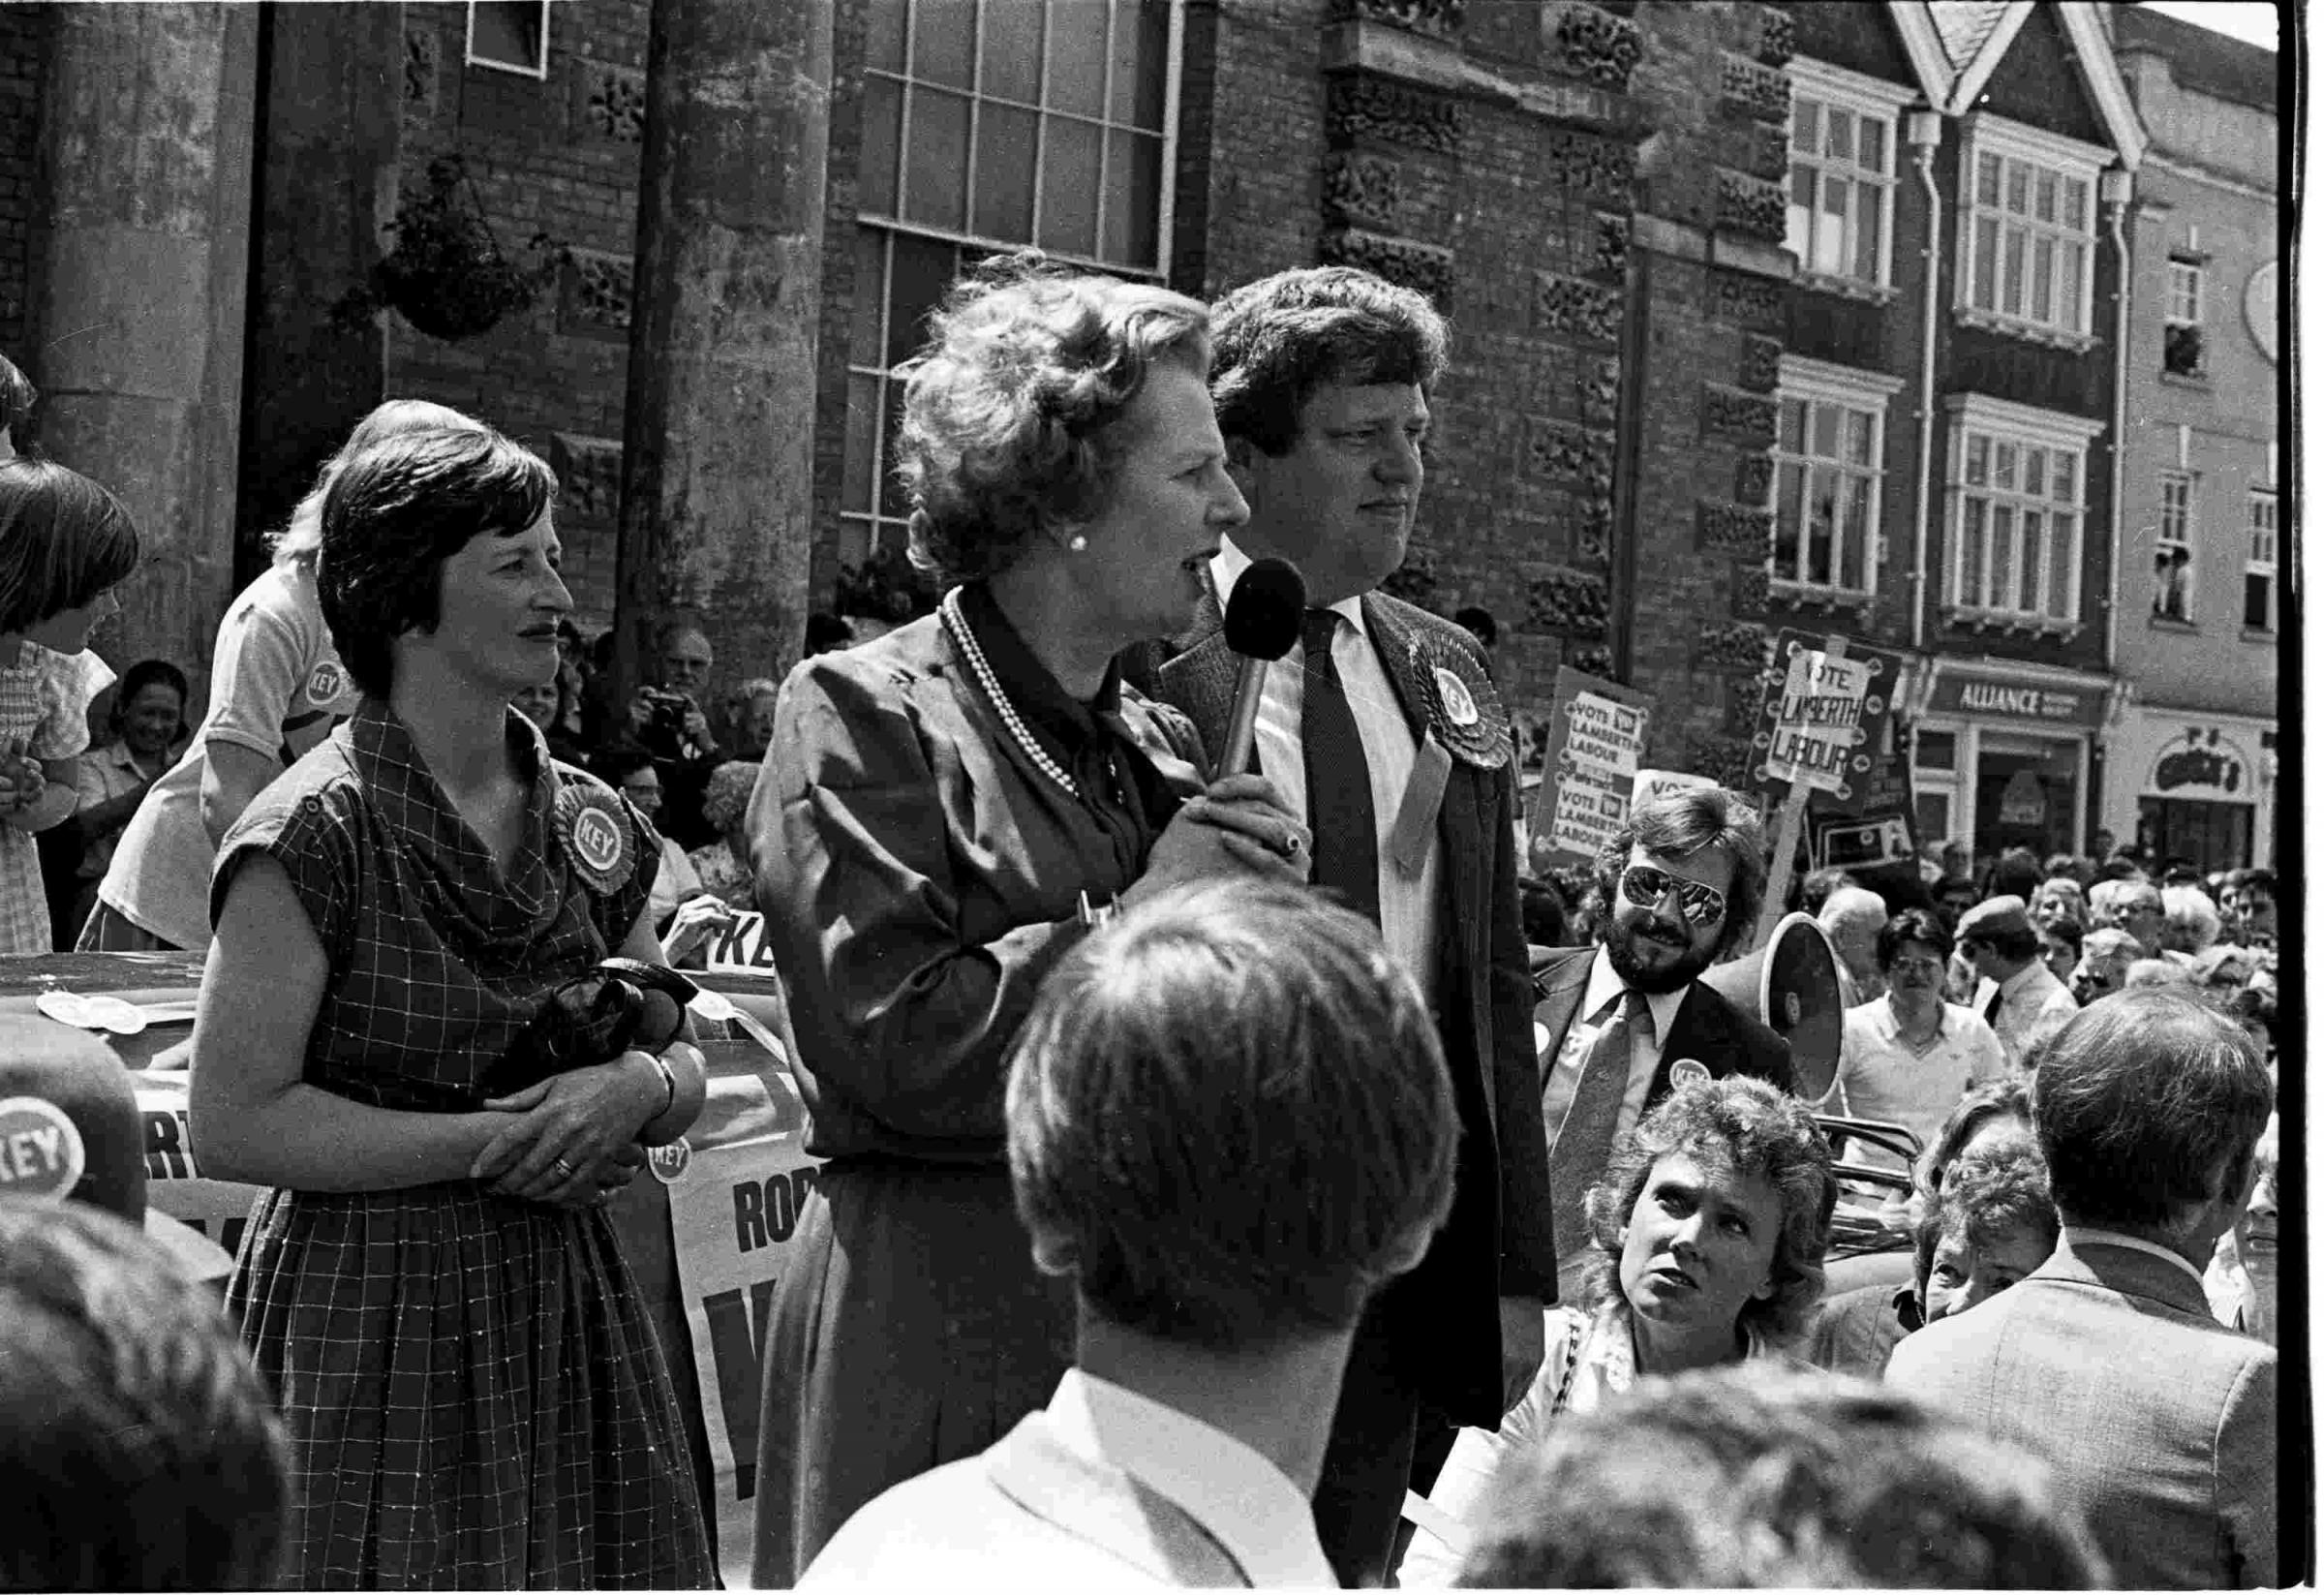 1983 election - Tories increase majority as Mrs Thatcher visits the city